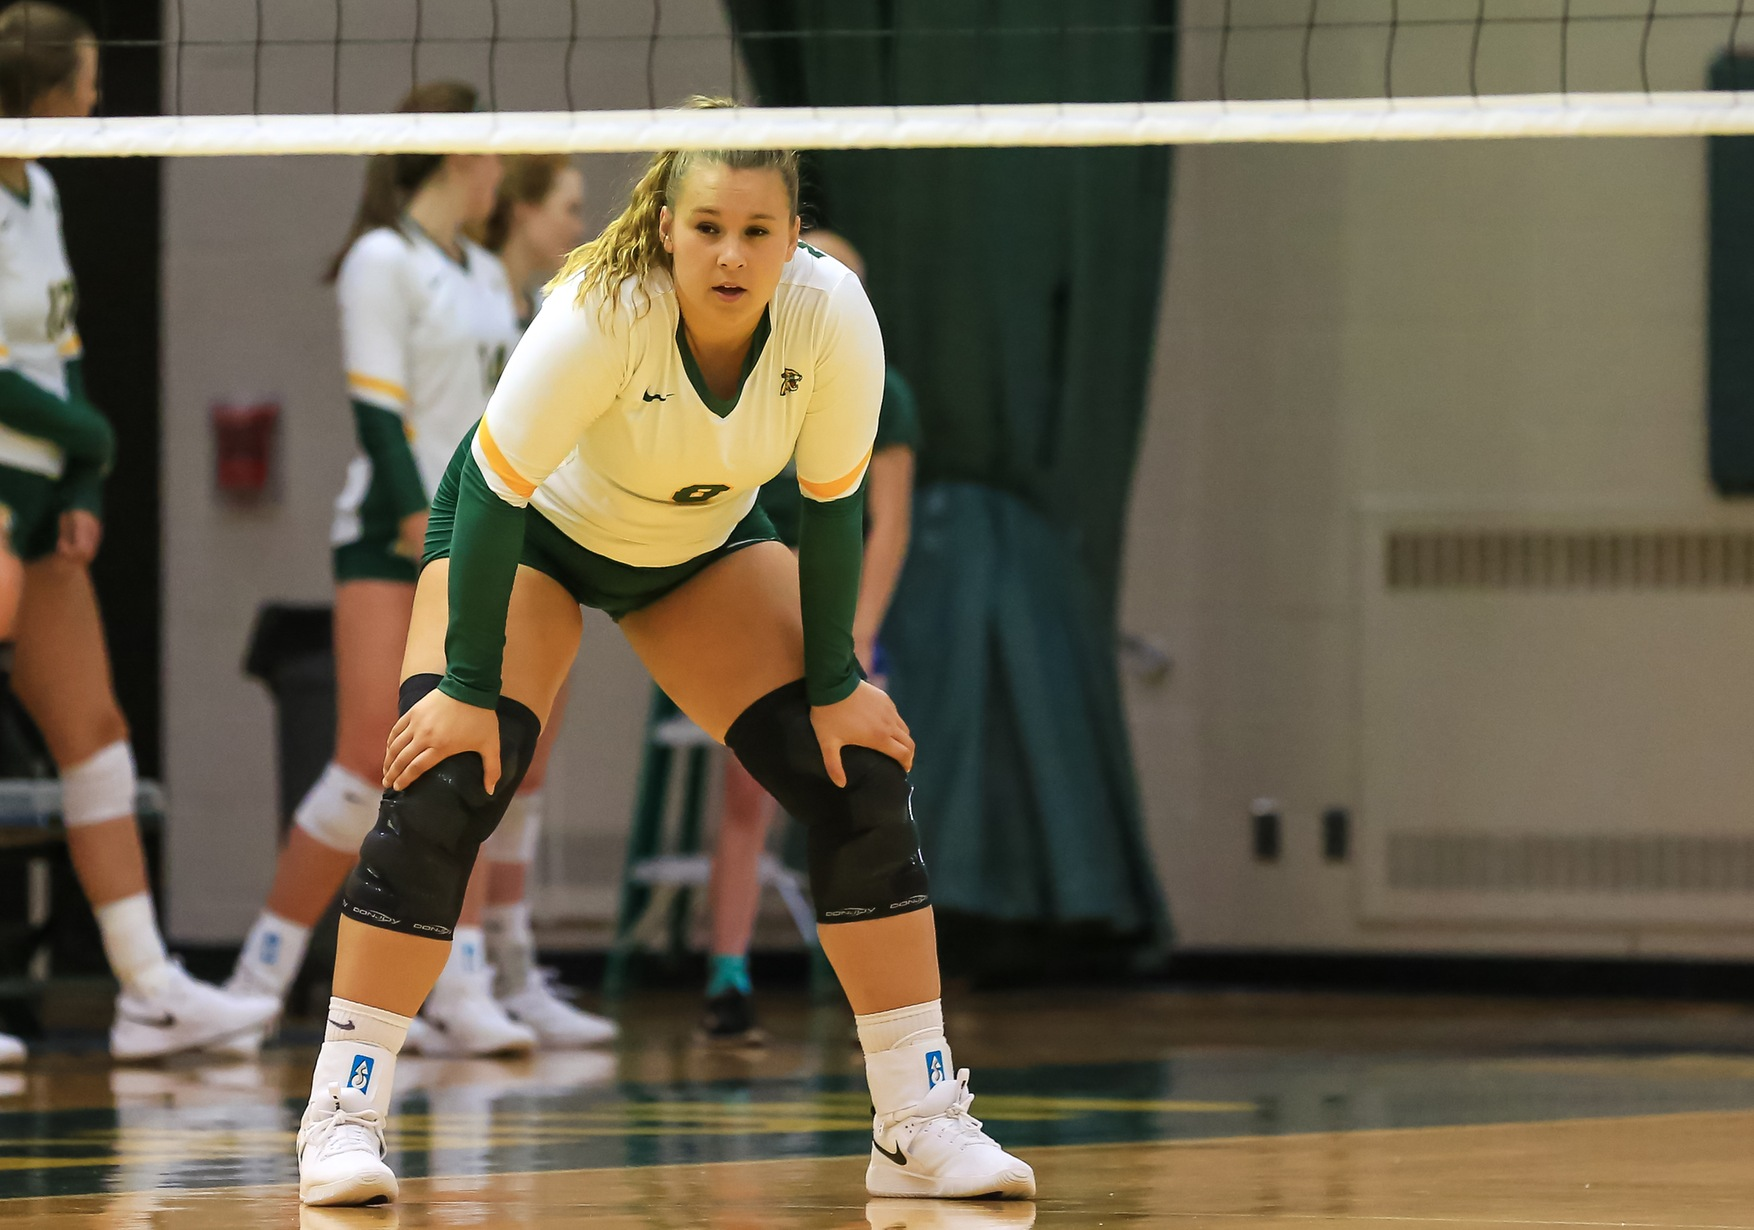 NMU Volleyball Opens 2018 at the Capital Classic